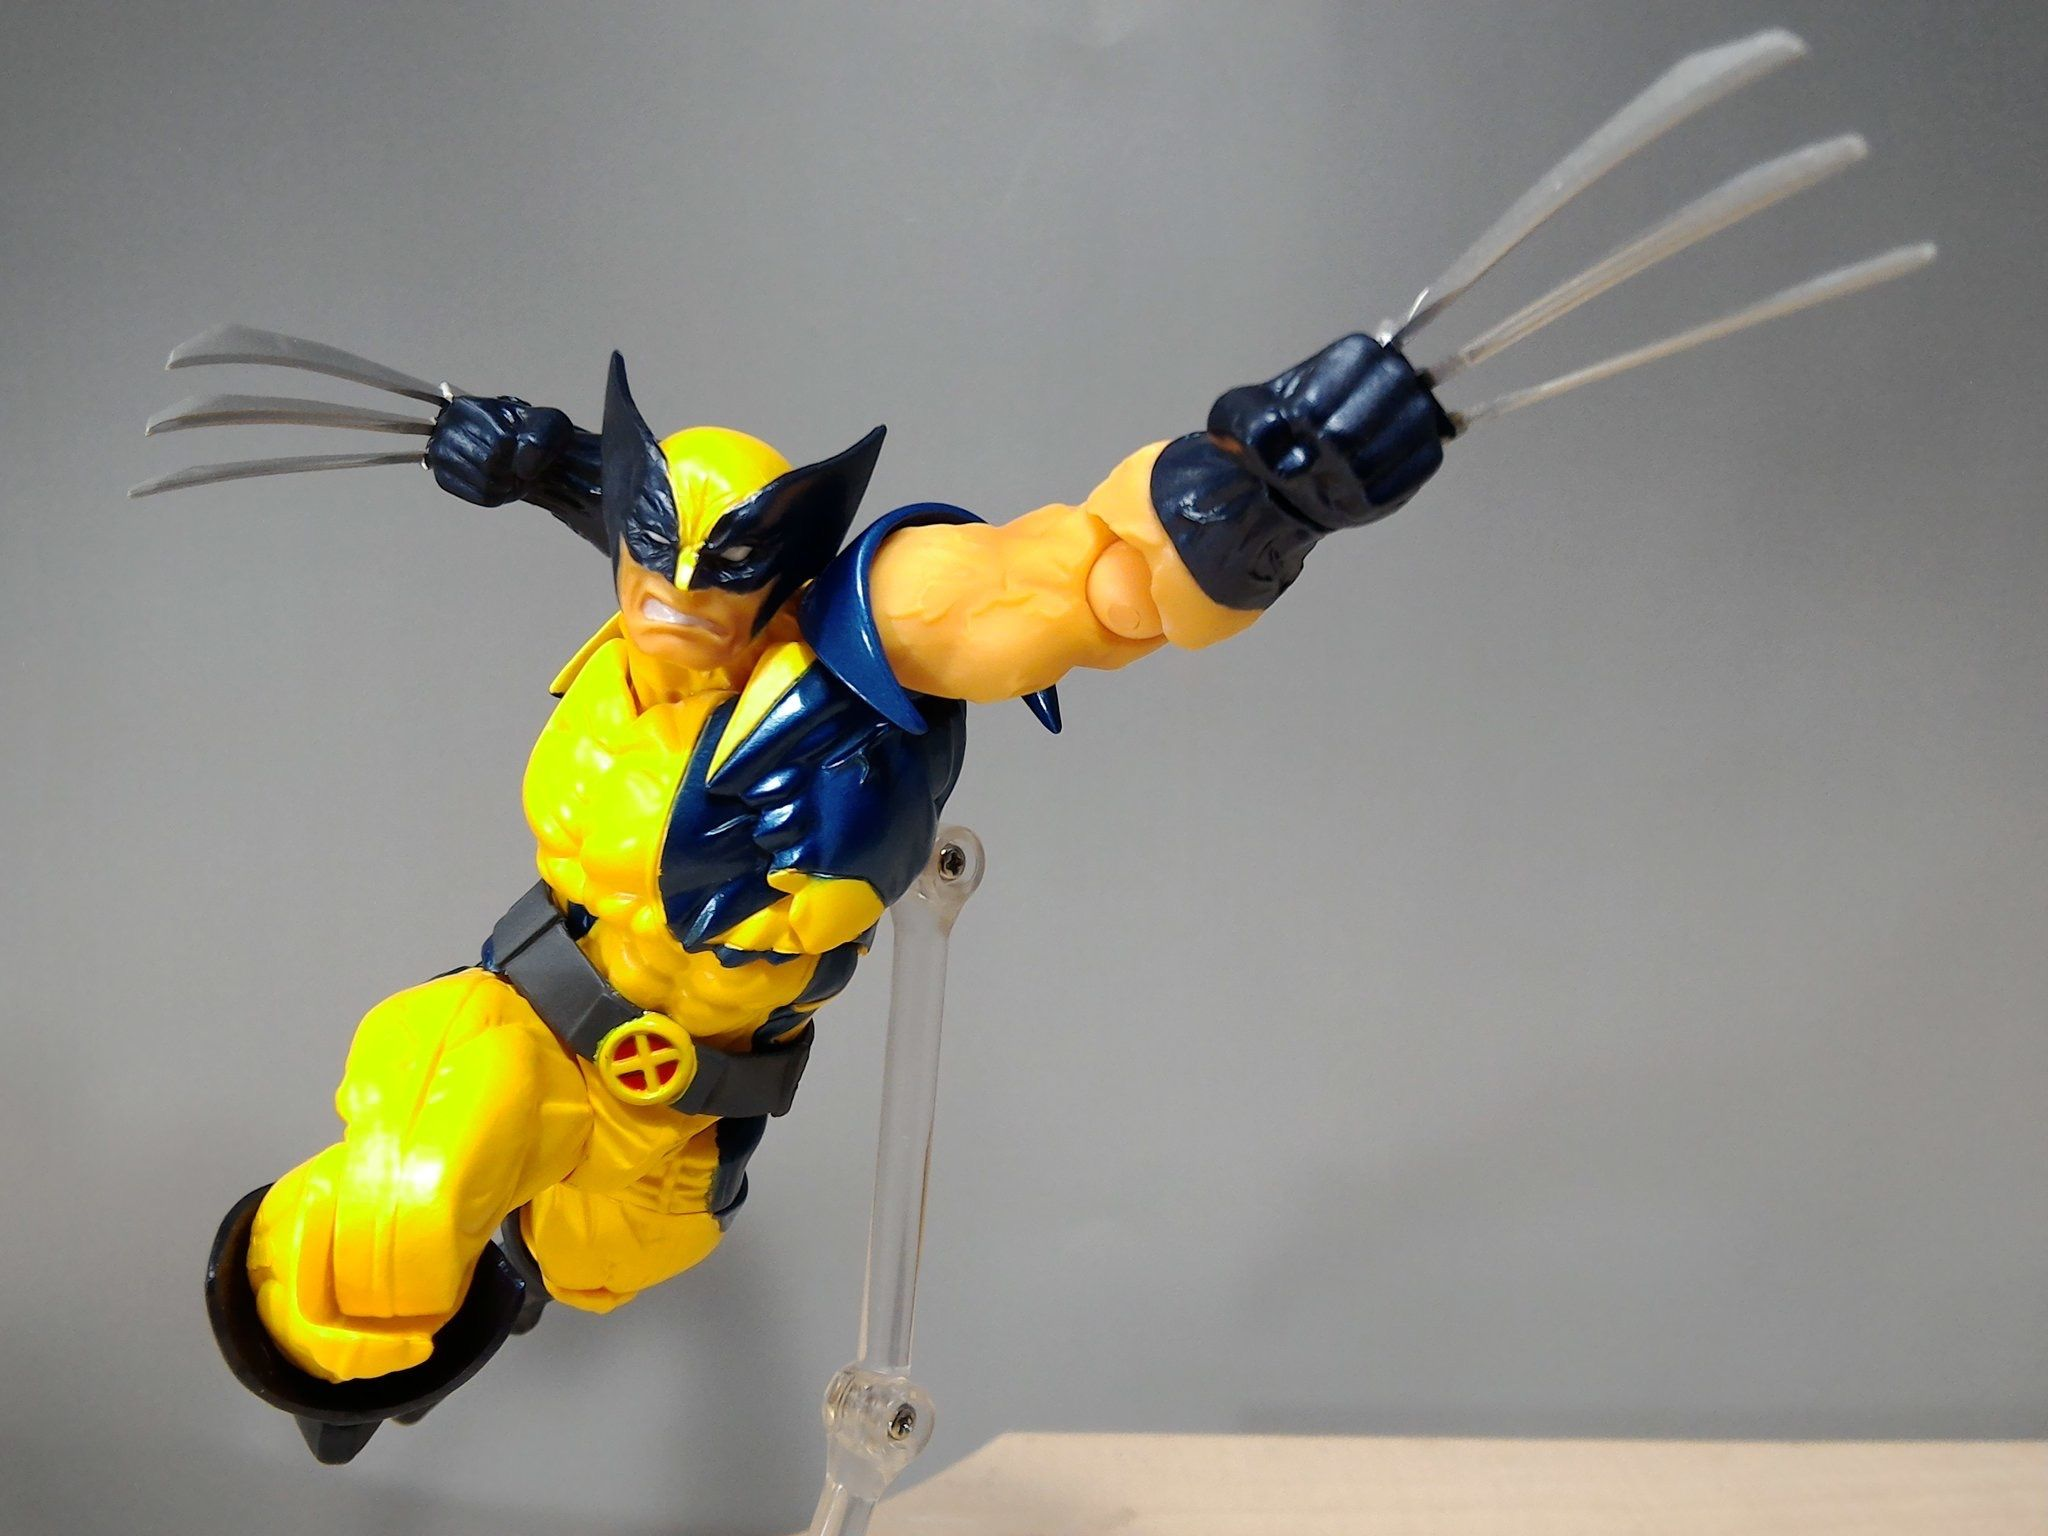 Roll Claw Marvel Action Figures Action Figure Photography Marvel Toys